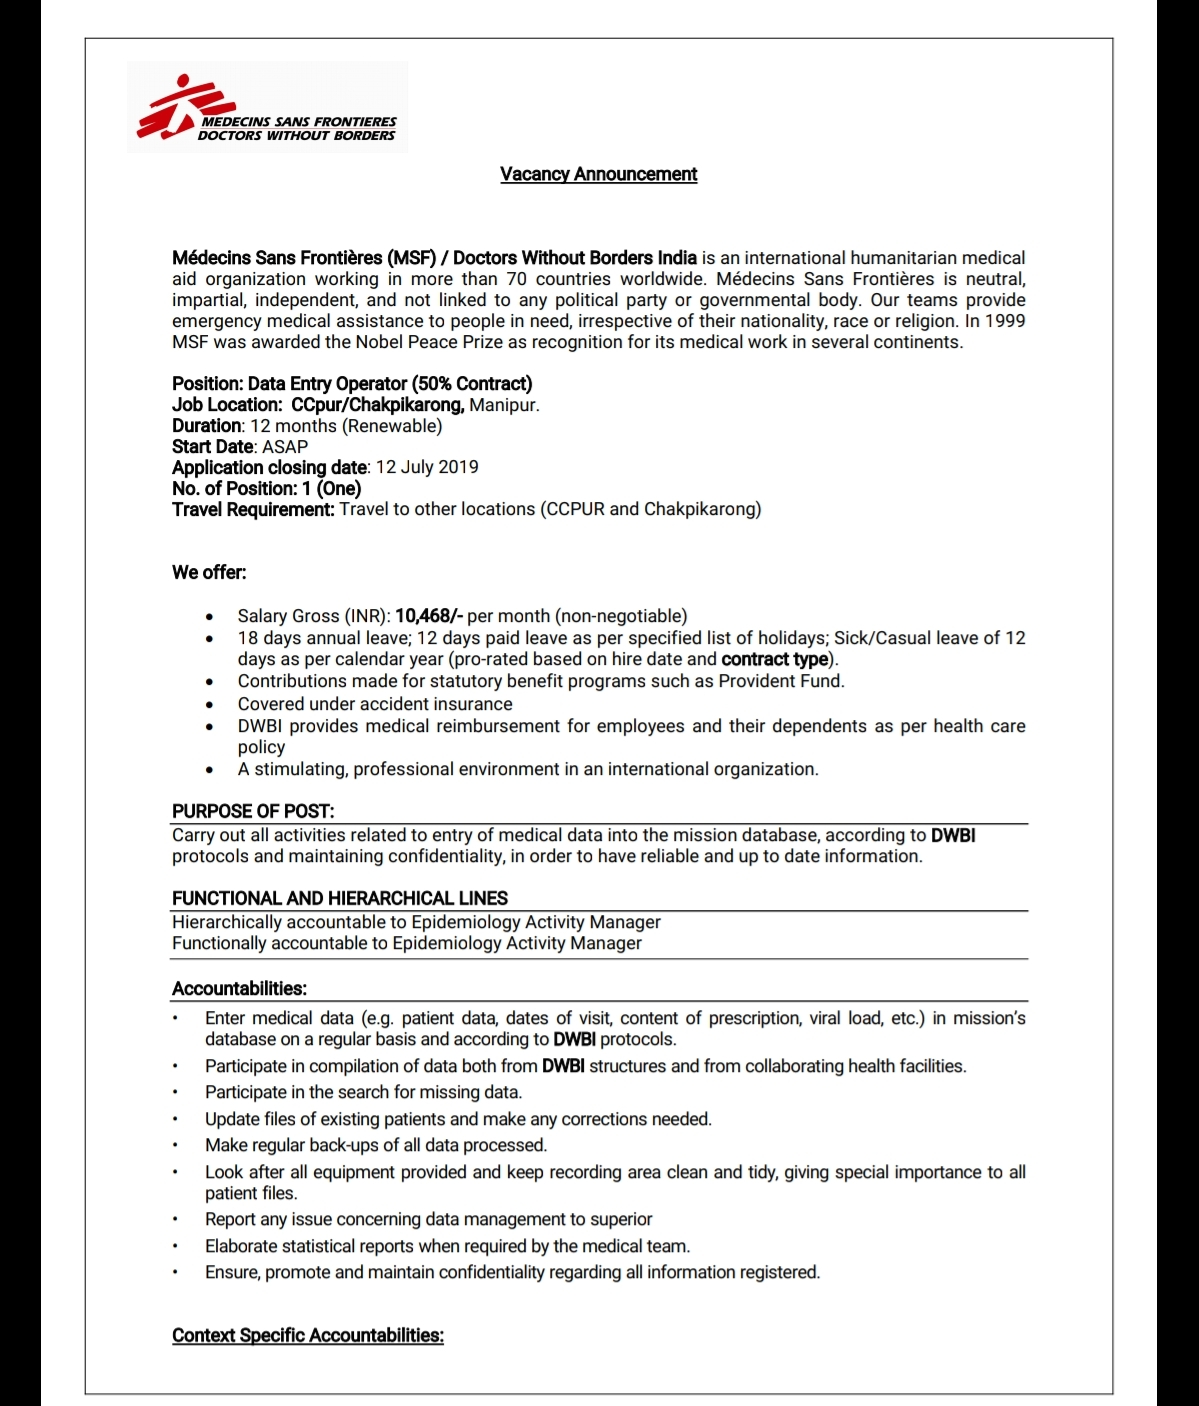 MSF/Doctors Without Borders  in Data Entry Operator ding mi khat dawi